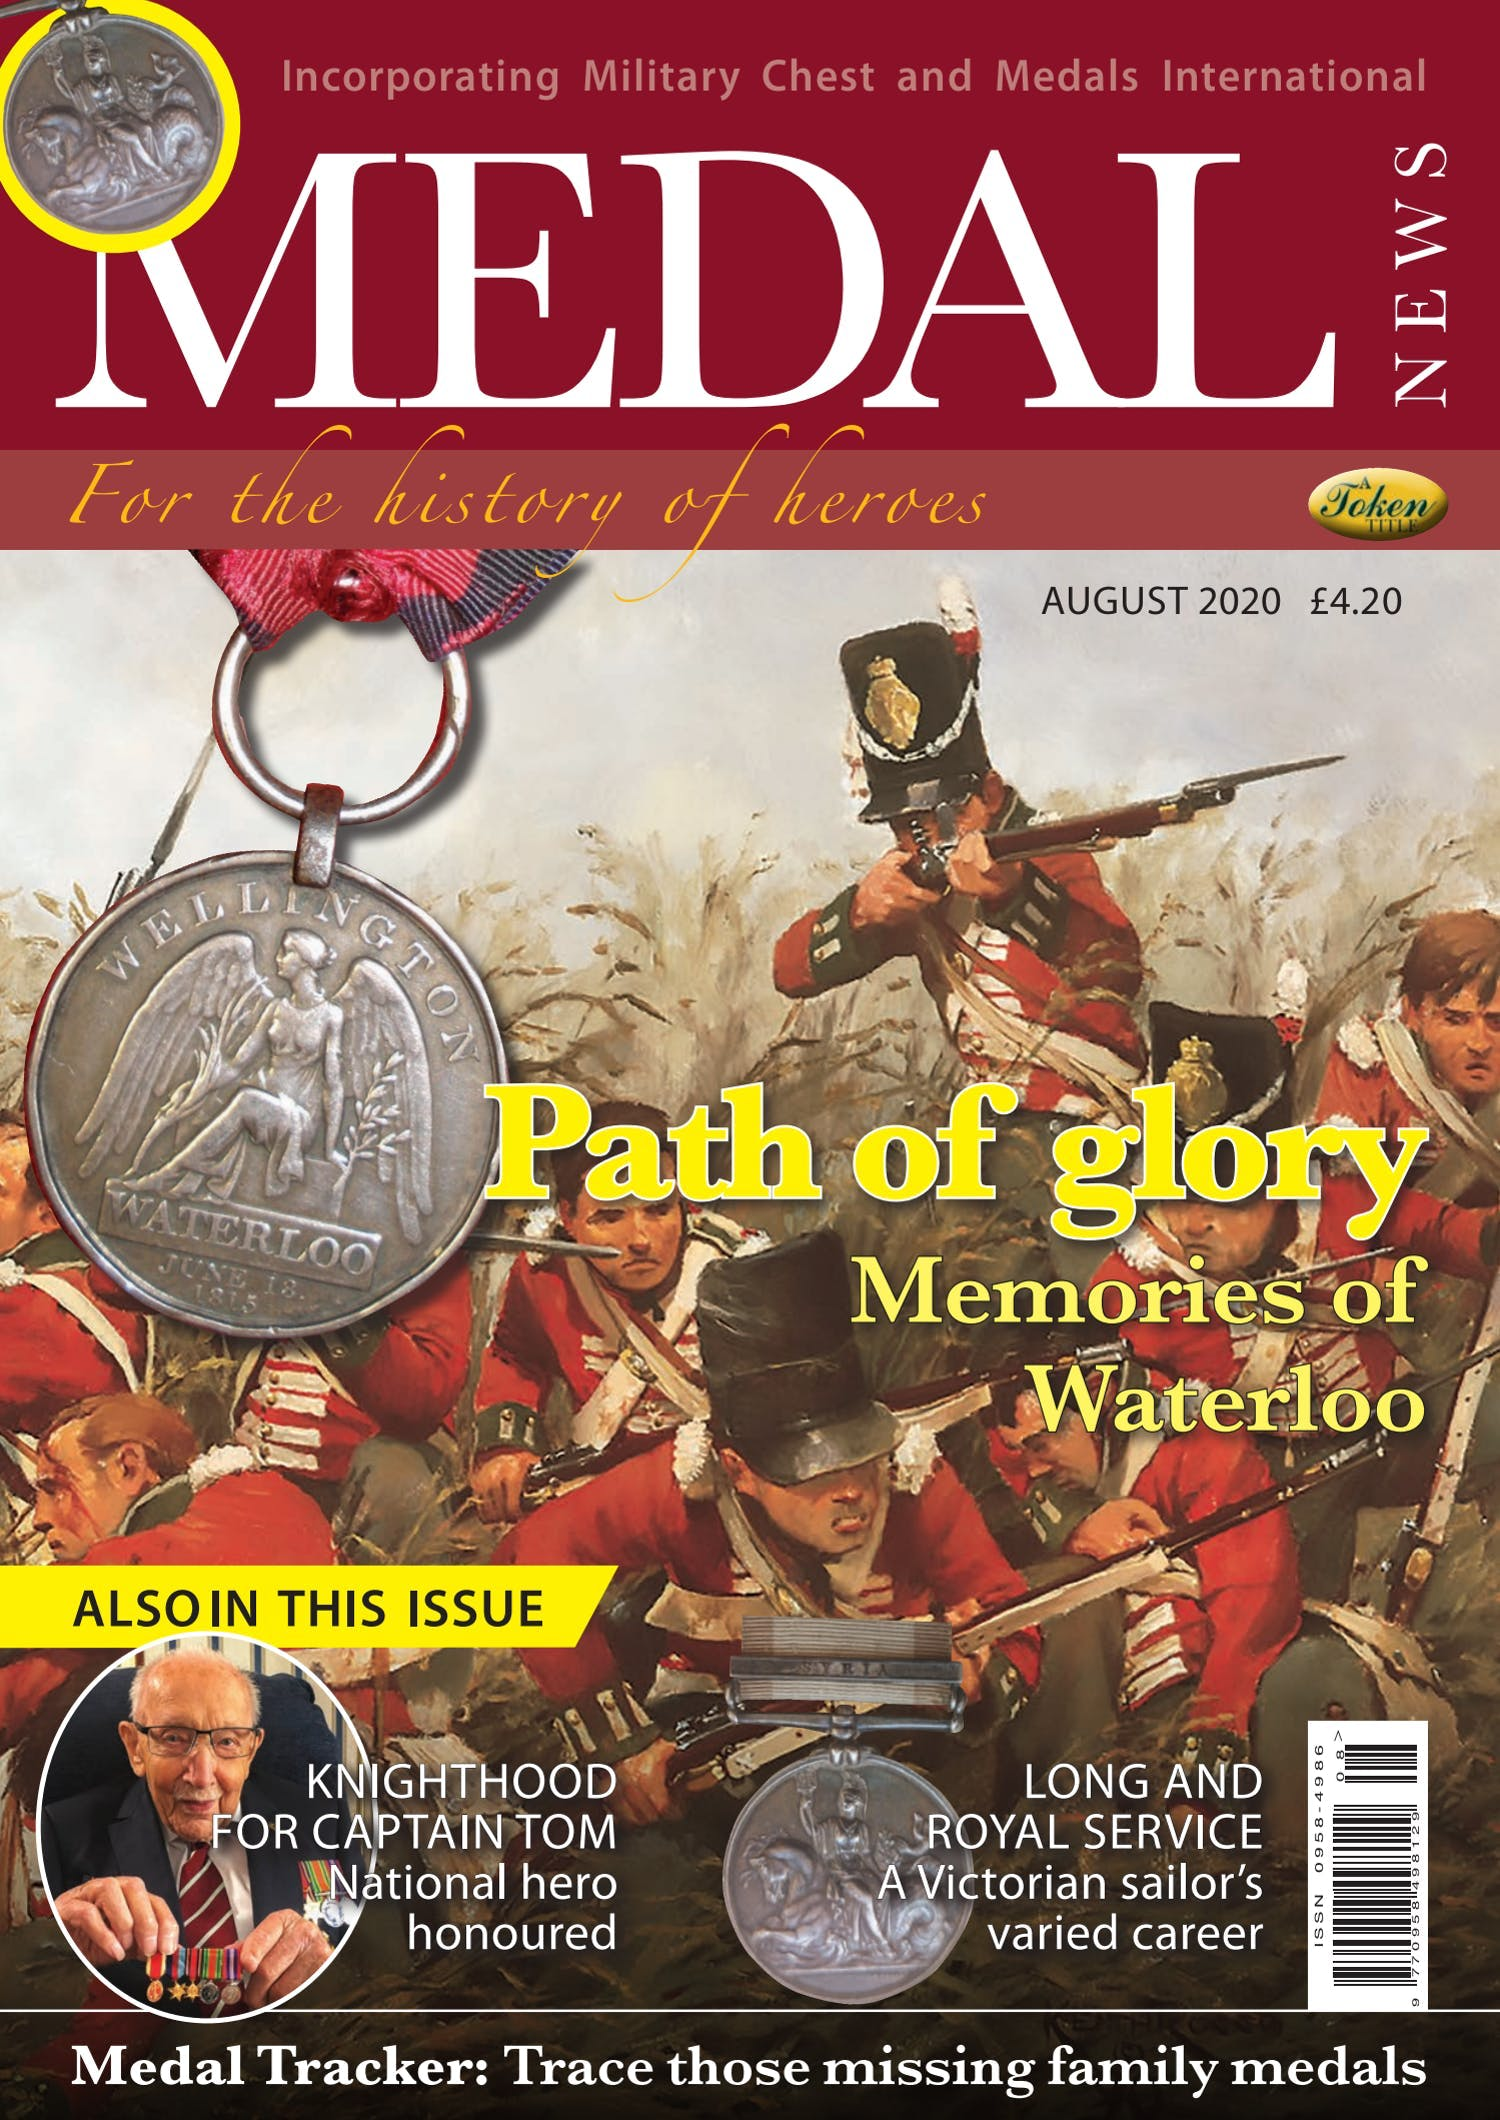 The front cover of Medal News, Volume 58, Number 7, August 2020